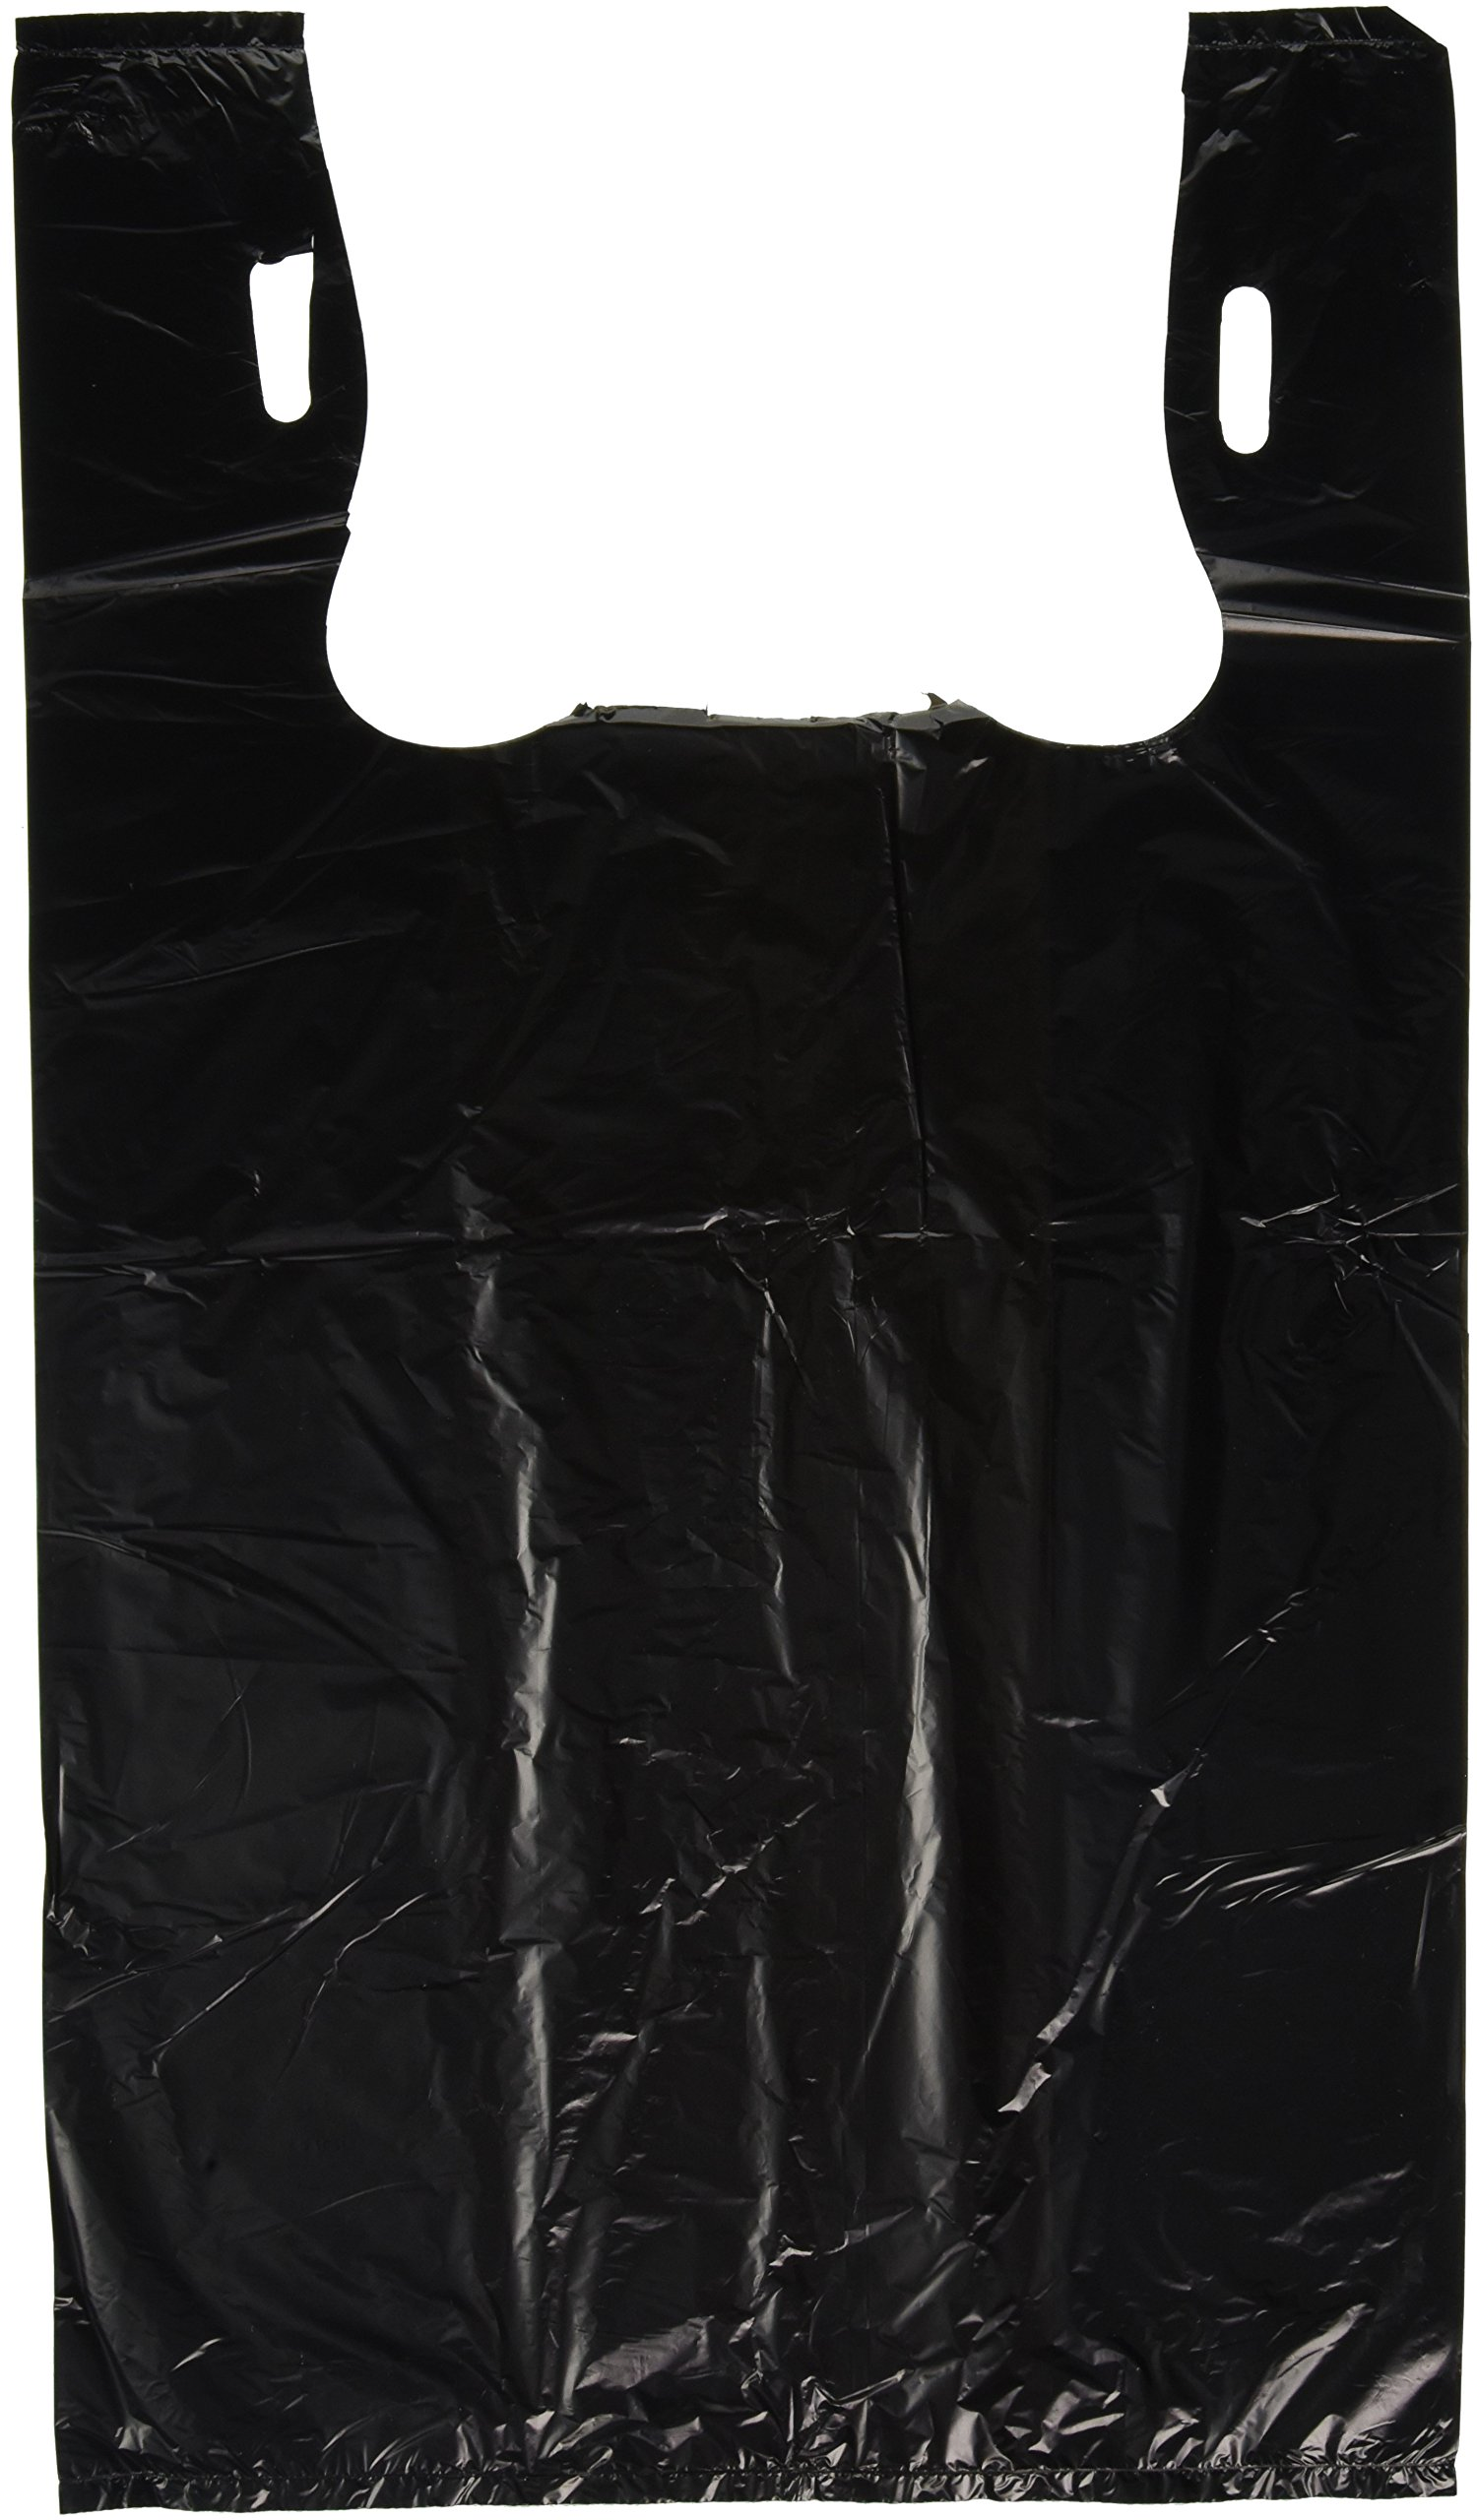 Plastic Bag-Black Plain Embossed T-Shirt Bag 11.5''x6.5''x21.5'' 13 mic - 1000 bags/case